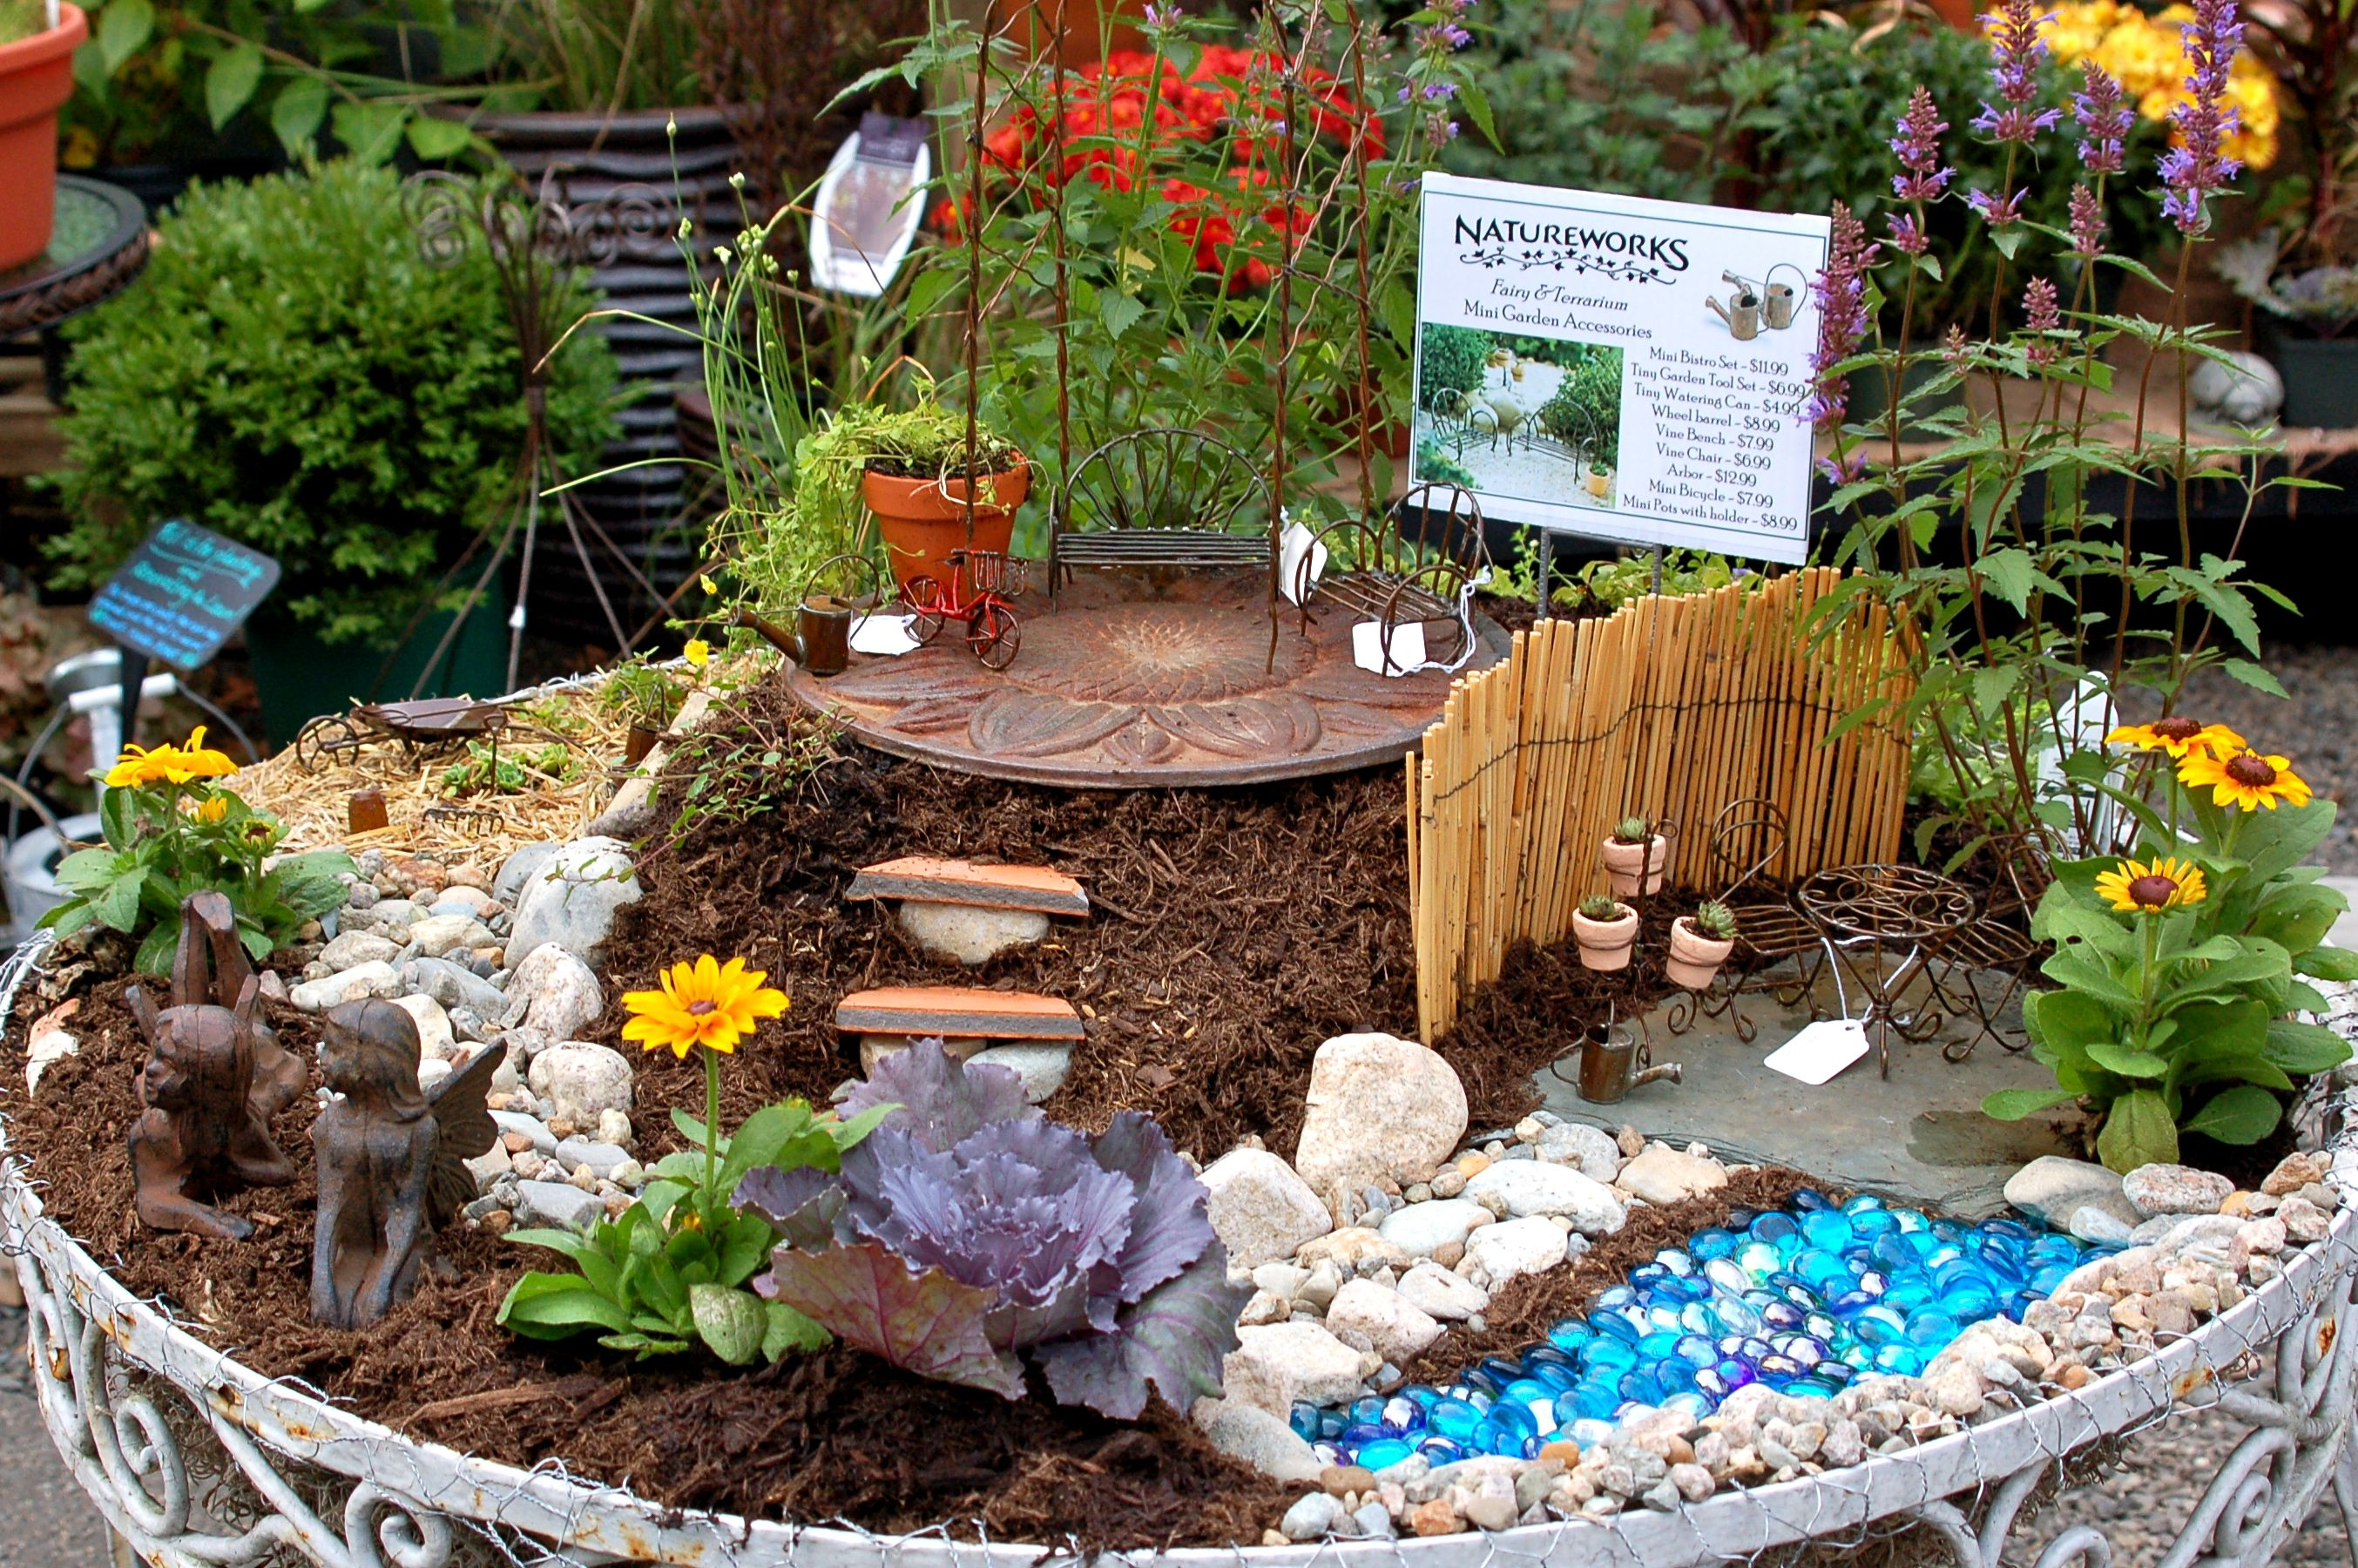 Miniature Fairy Garden Ideas diy miniature wheelbarrow fairy garden ideas and projects 17 Best Images About Miniature Fairy Gardens On Pinterest Gardens Miniature Fairy Gardens And